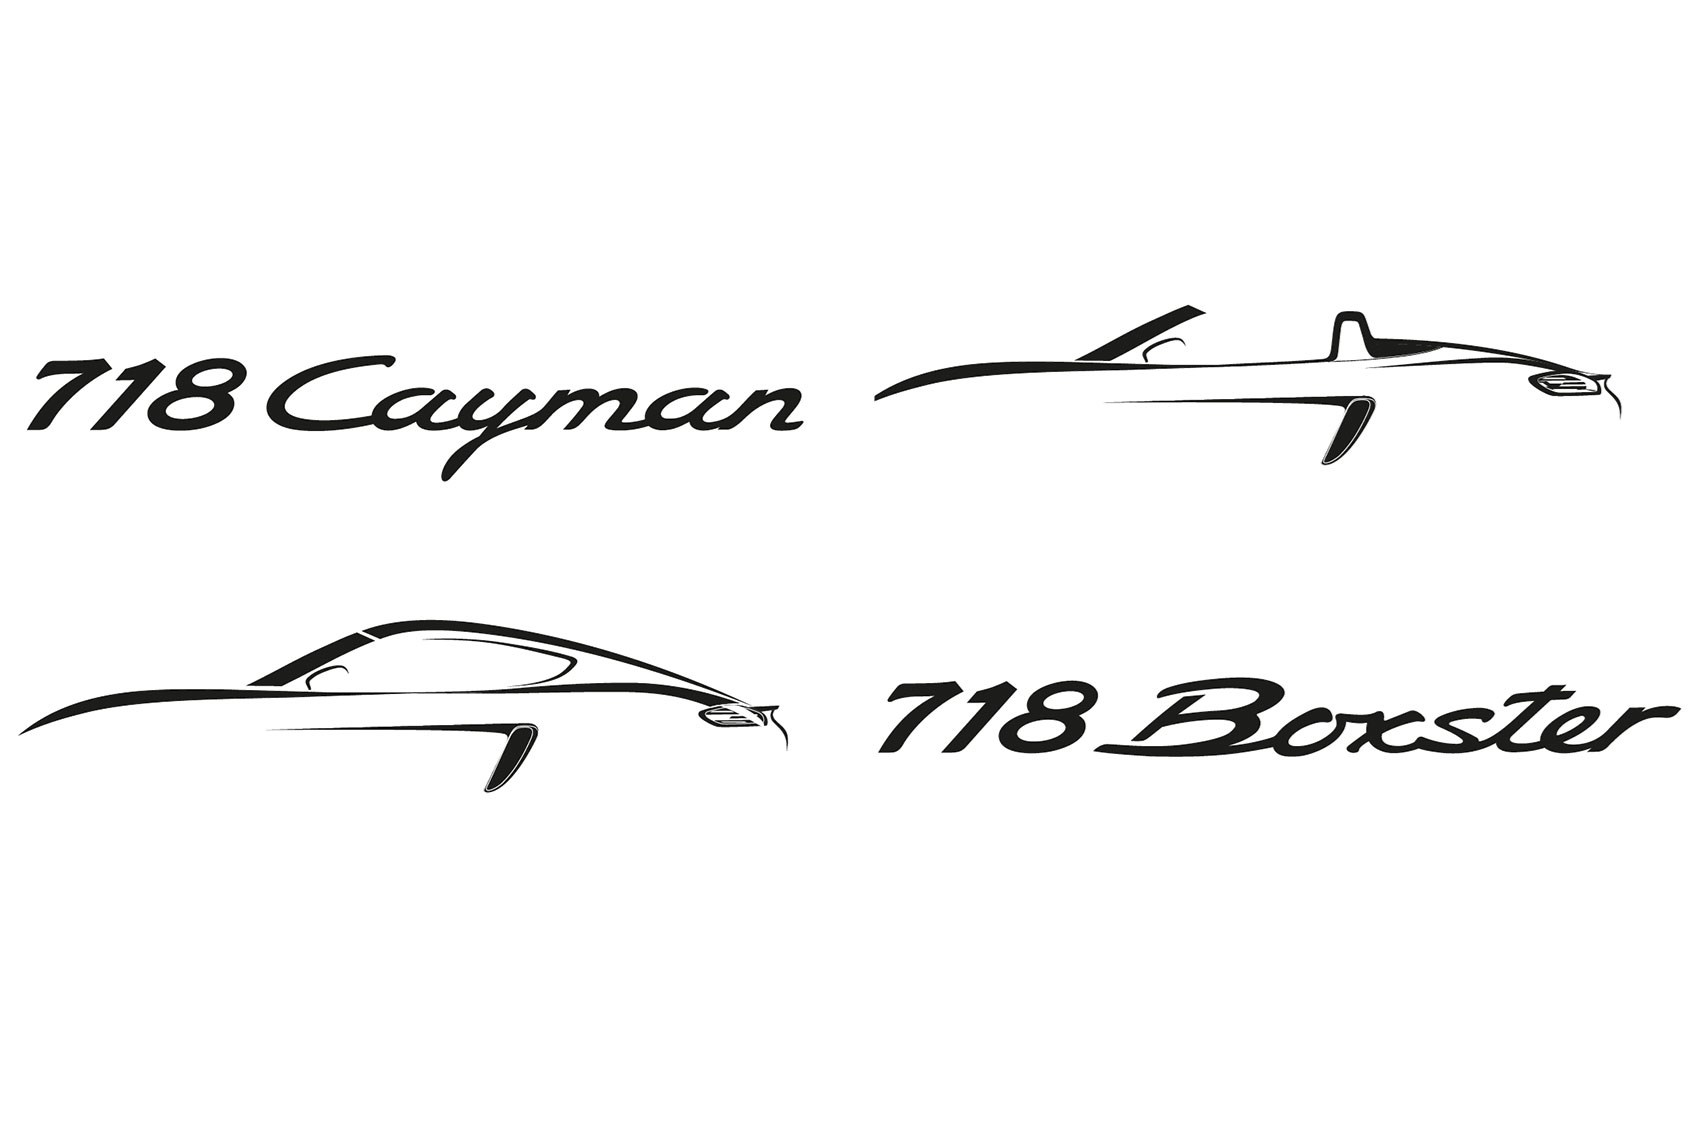 Porsche adds 718 designation to Boxster and Cayman for